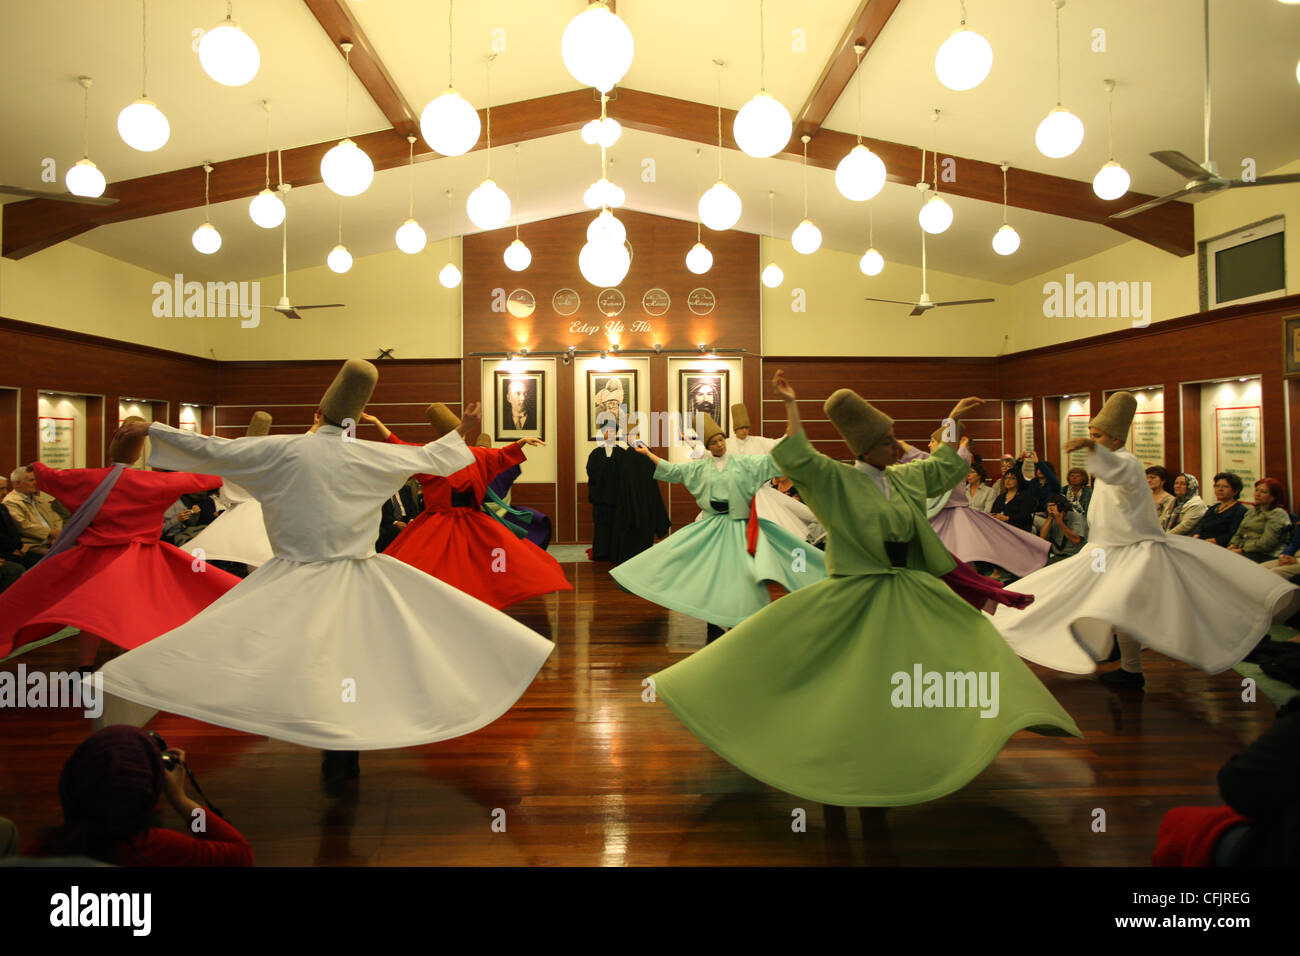 Whirling dervish performance in Silvrikapi Meylana cultural center, Istanbul, Turkey, Europe Stock Photo